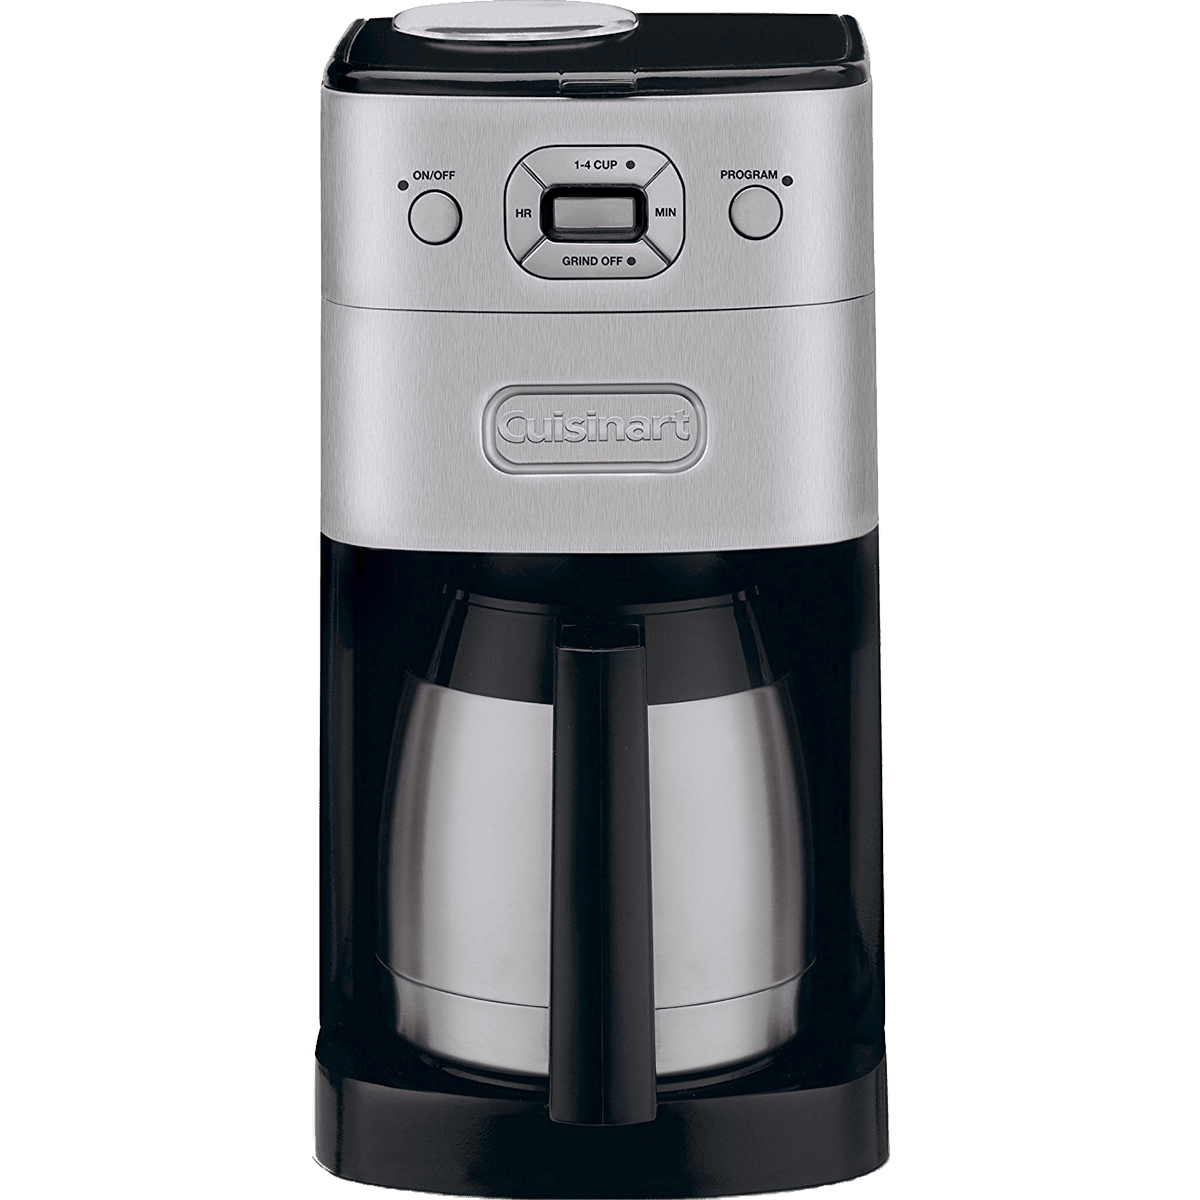 Cuisinart Grind & Brew Coffee Maker (DGB-625BC) Quench Essentials